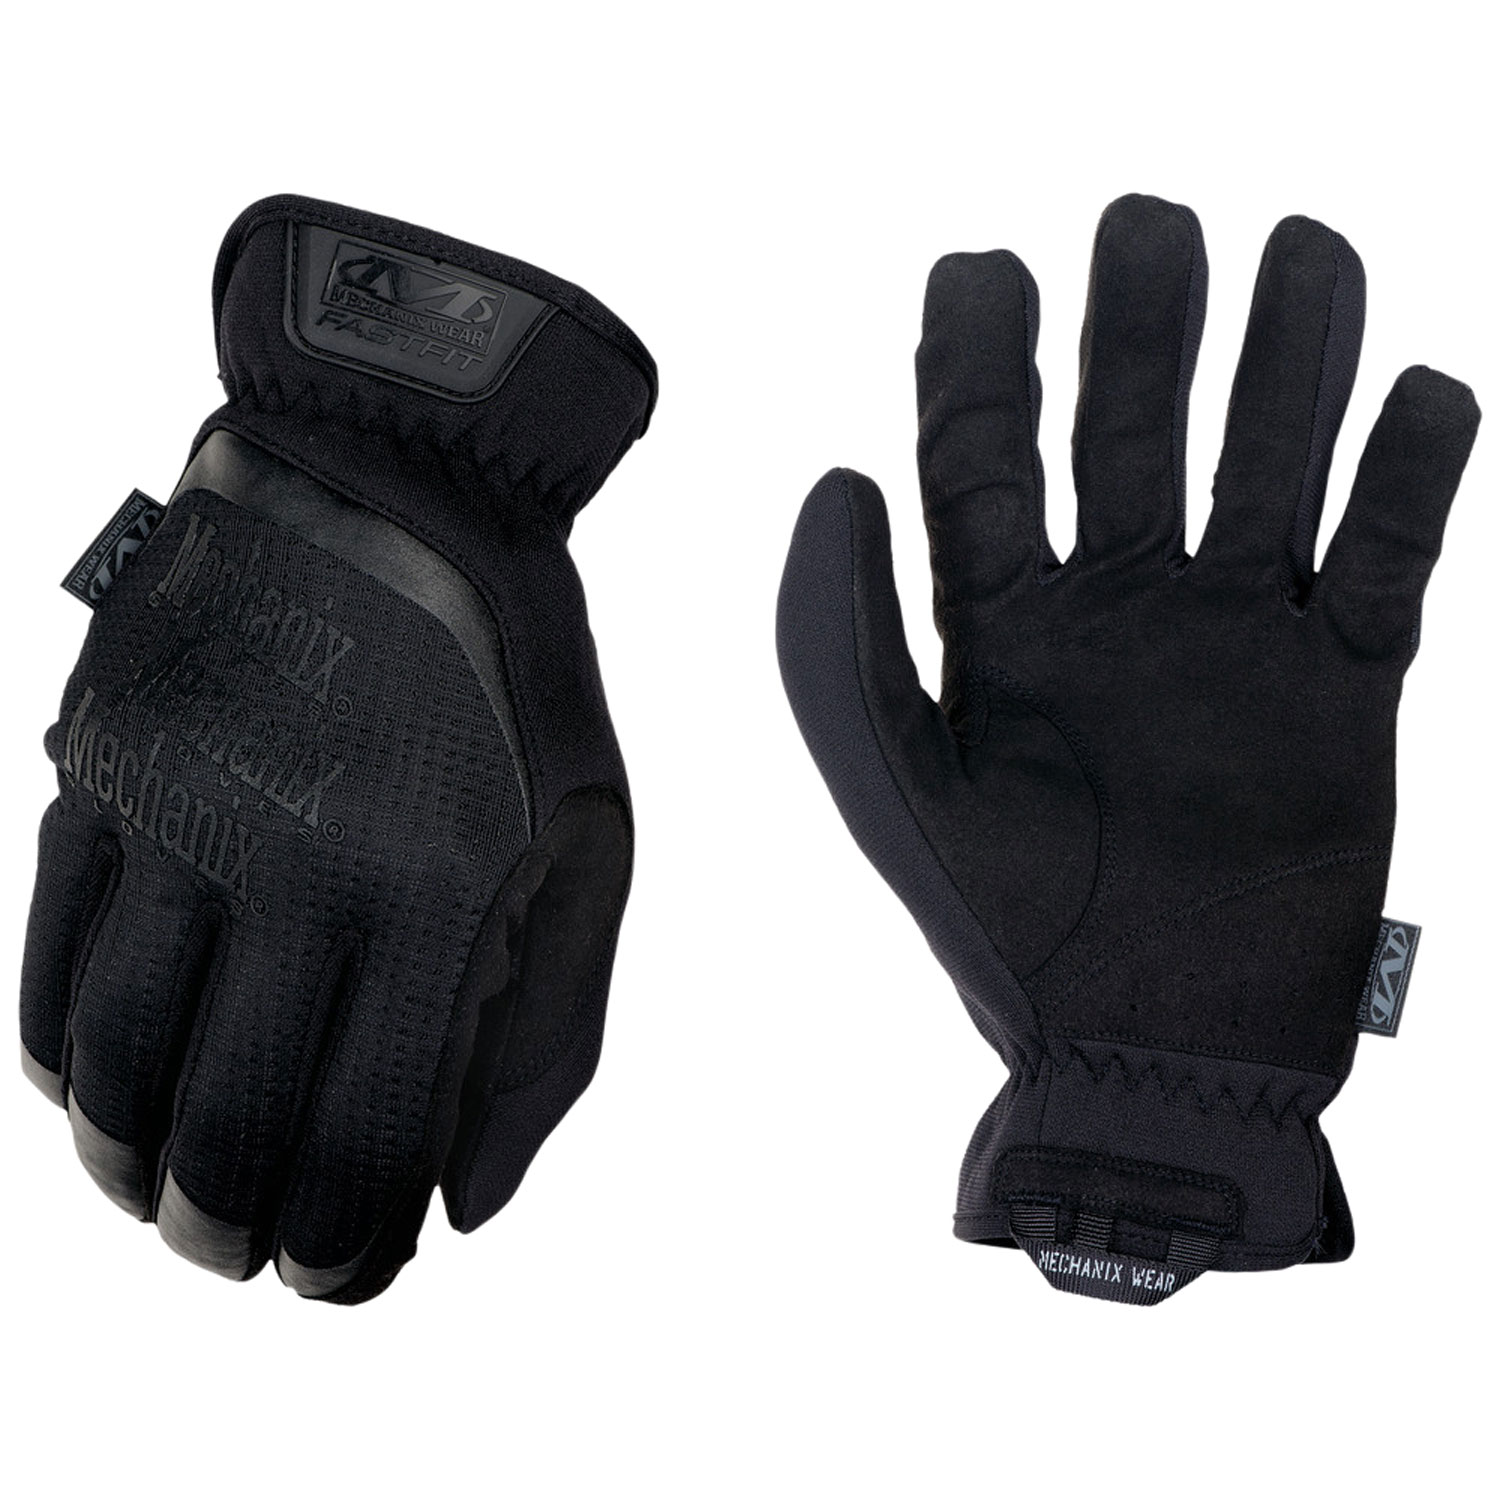 MECHANIX WEAR FFTAB-55-009 FastFit Covert Medium Black Synthetic Leather Touchscreen